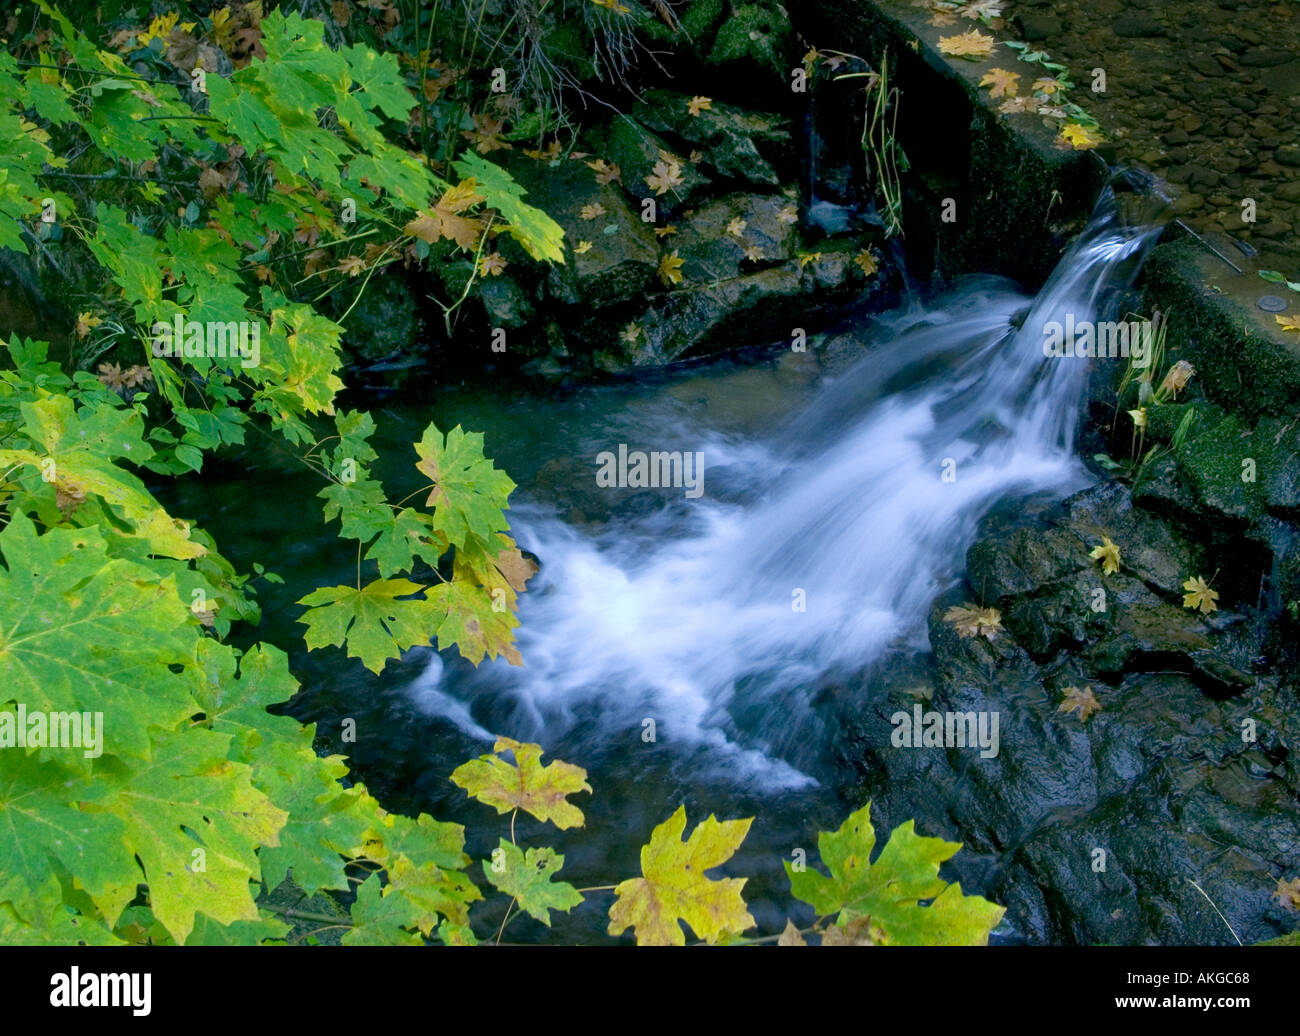 A small stream bracketed by maple leaves in the forest of the Sierra Nevada mountains of California - Stock Image